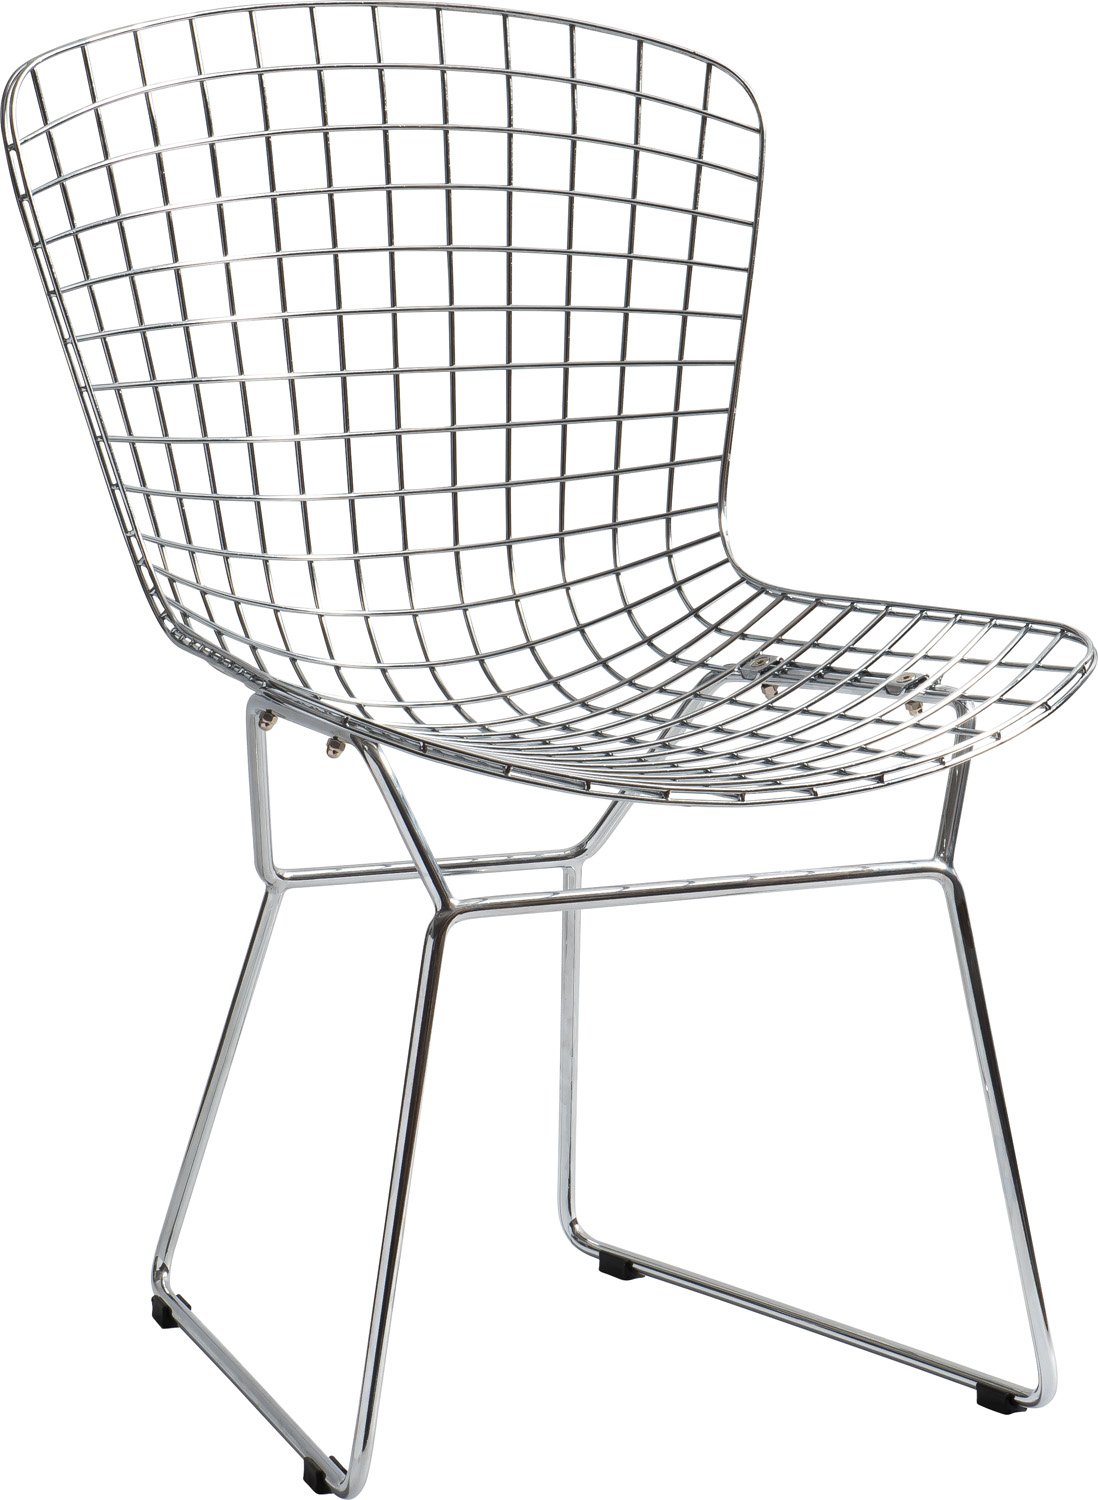 JSWMC-02  Reversed Trapezoid Wired Metal Leisure Chair Without Armrest